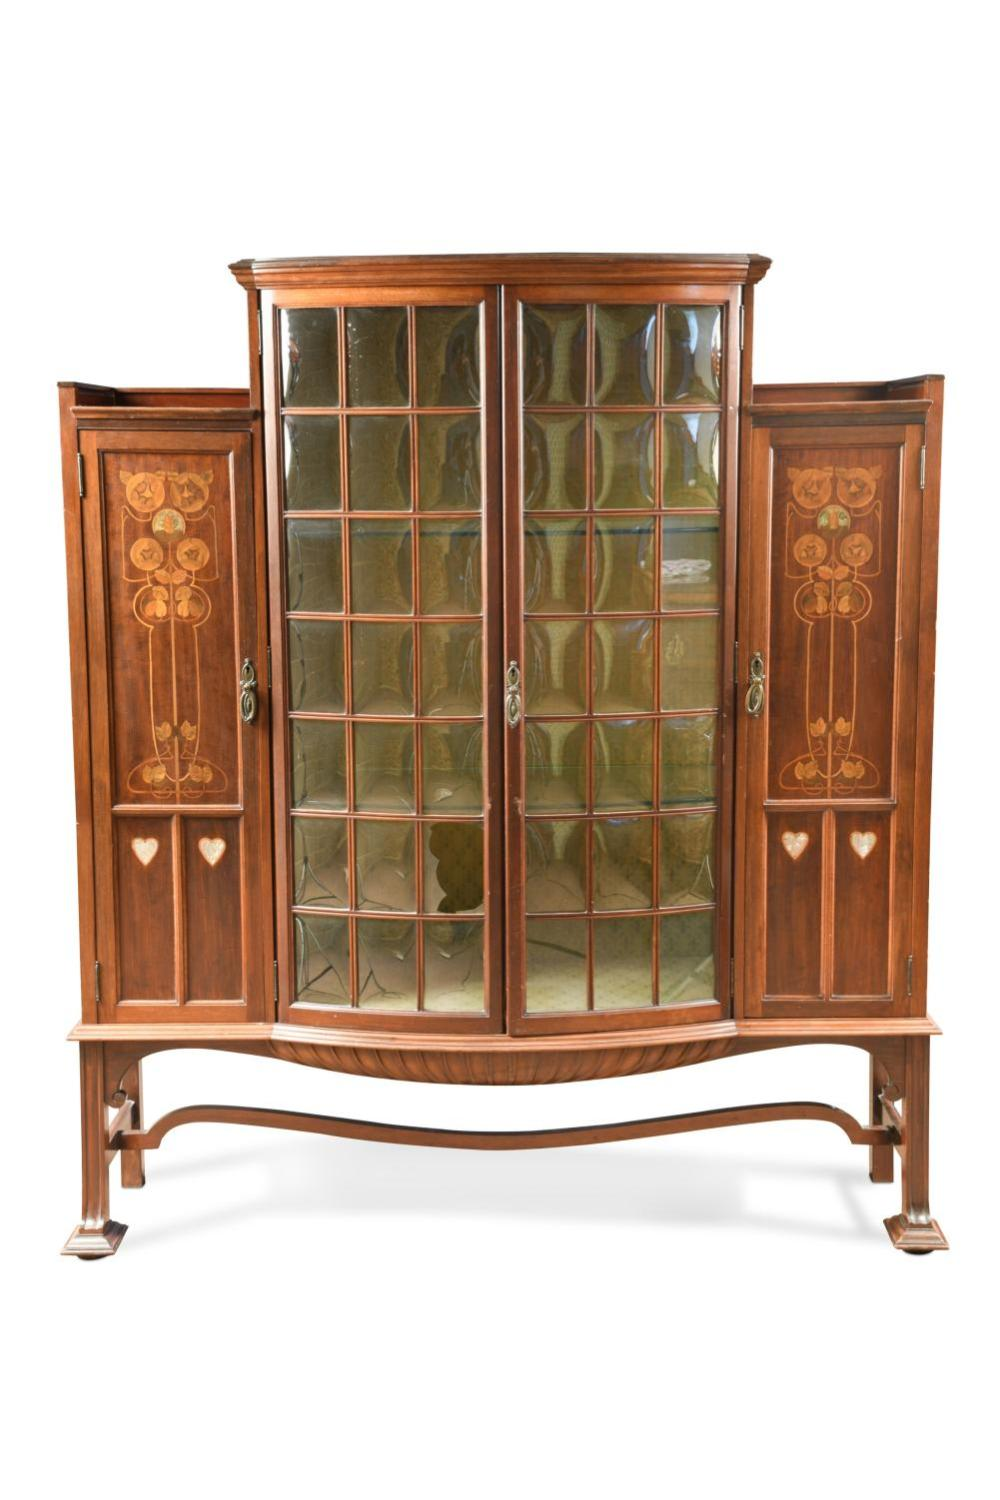 An Art Nouveau display cabinet in the manner of Shapland & Petter, circa 1900,